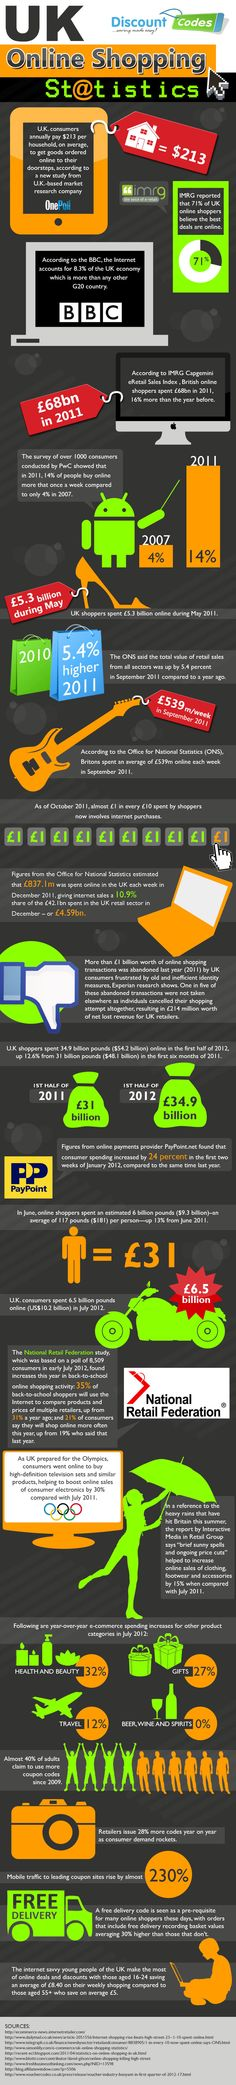 UK Online Shopping Statistics